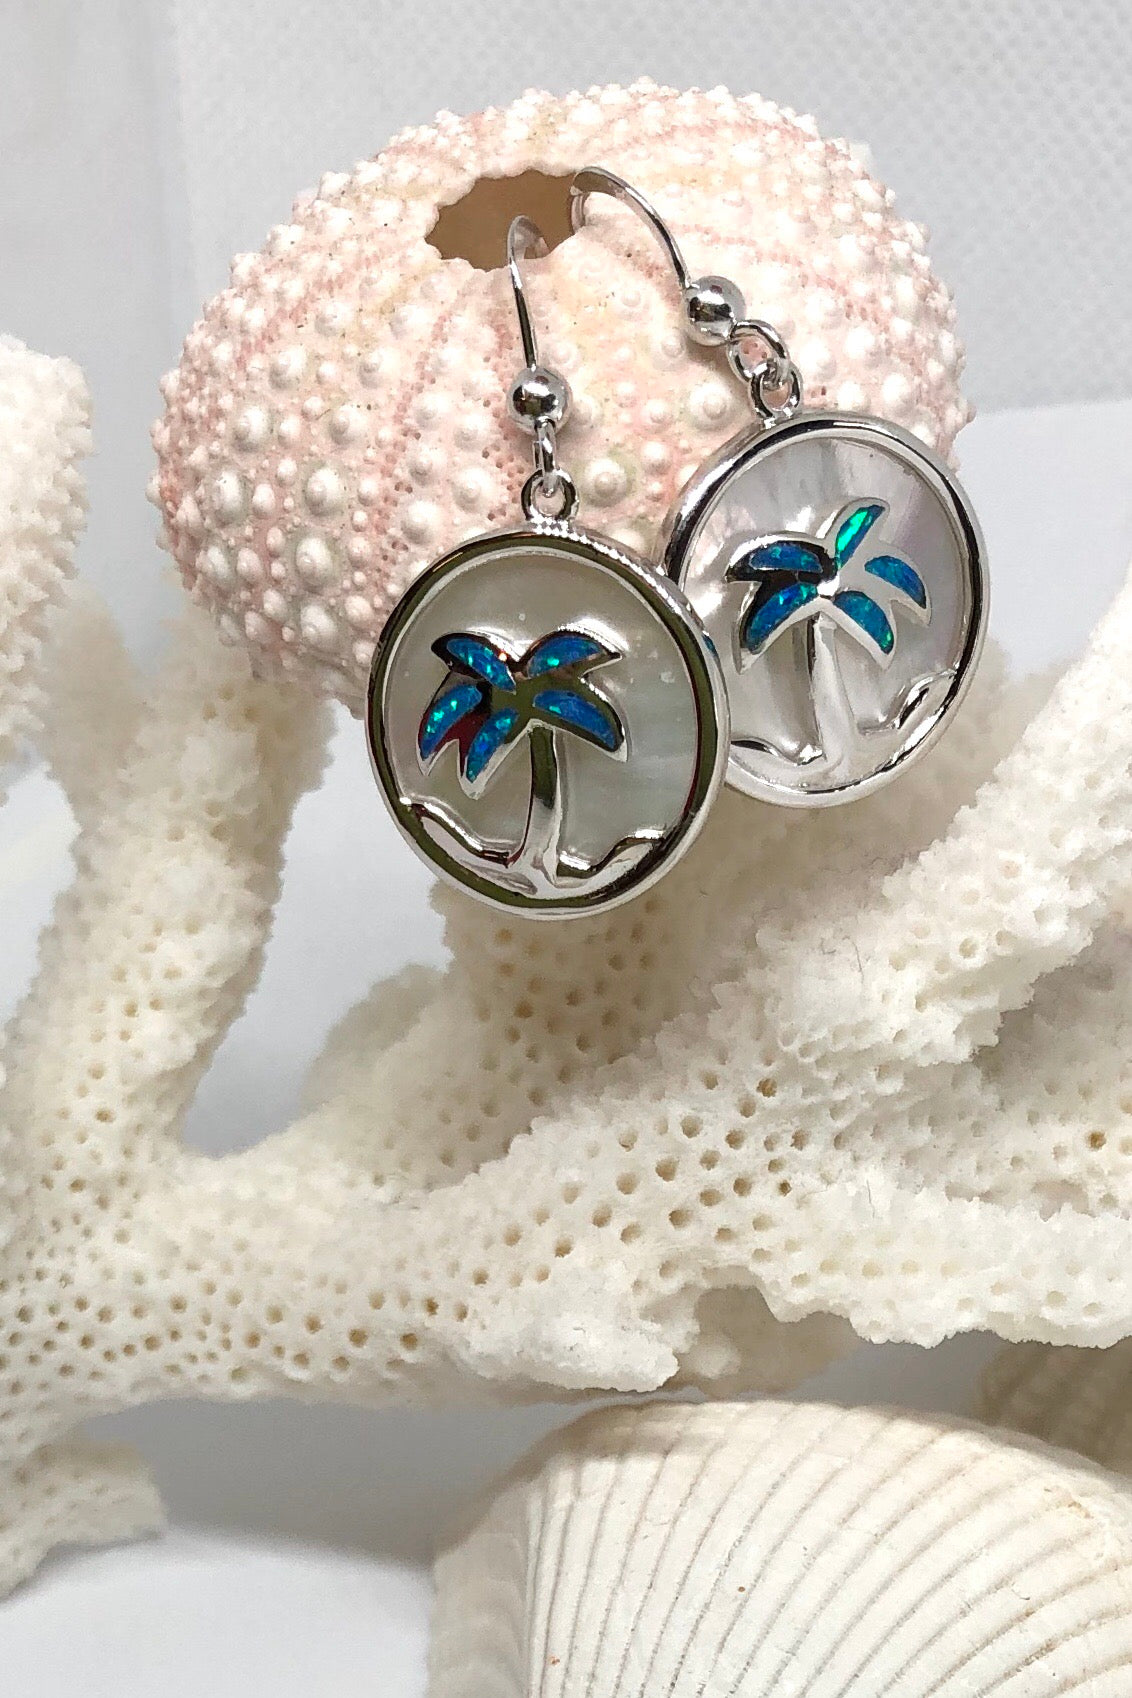 Earrings With Mother of pearl silver and pretty blue opalescent chips in the palm fronds.